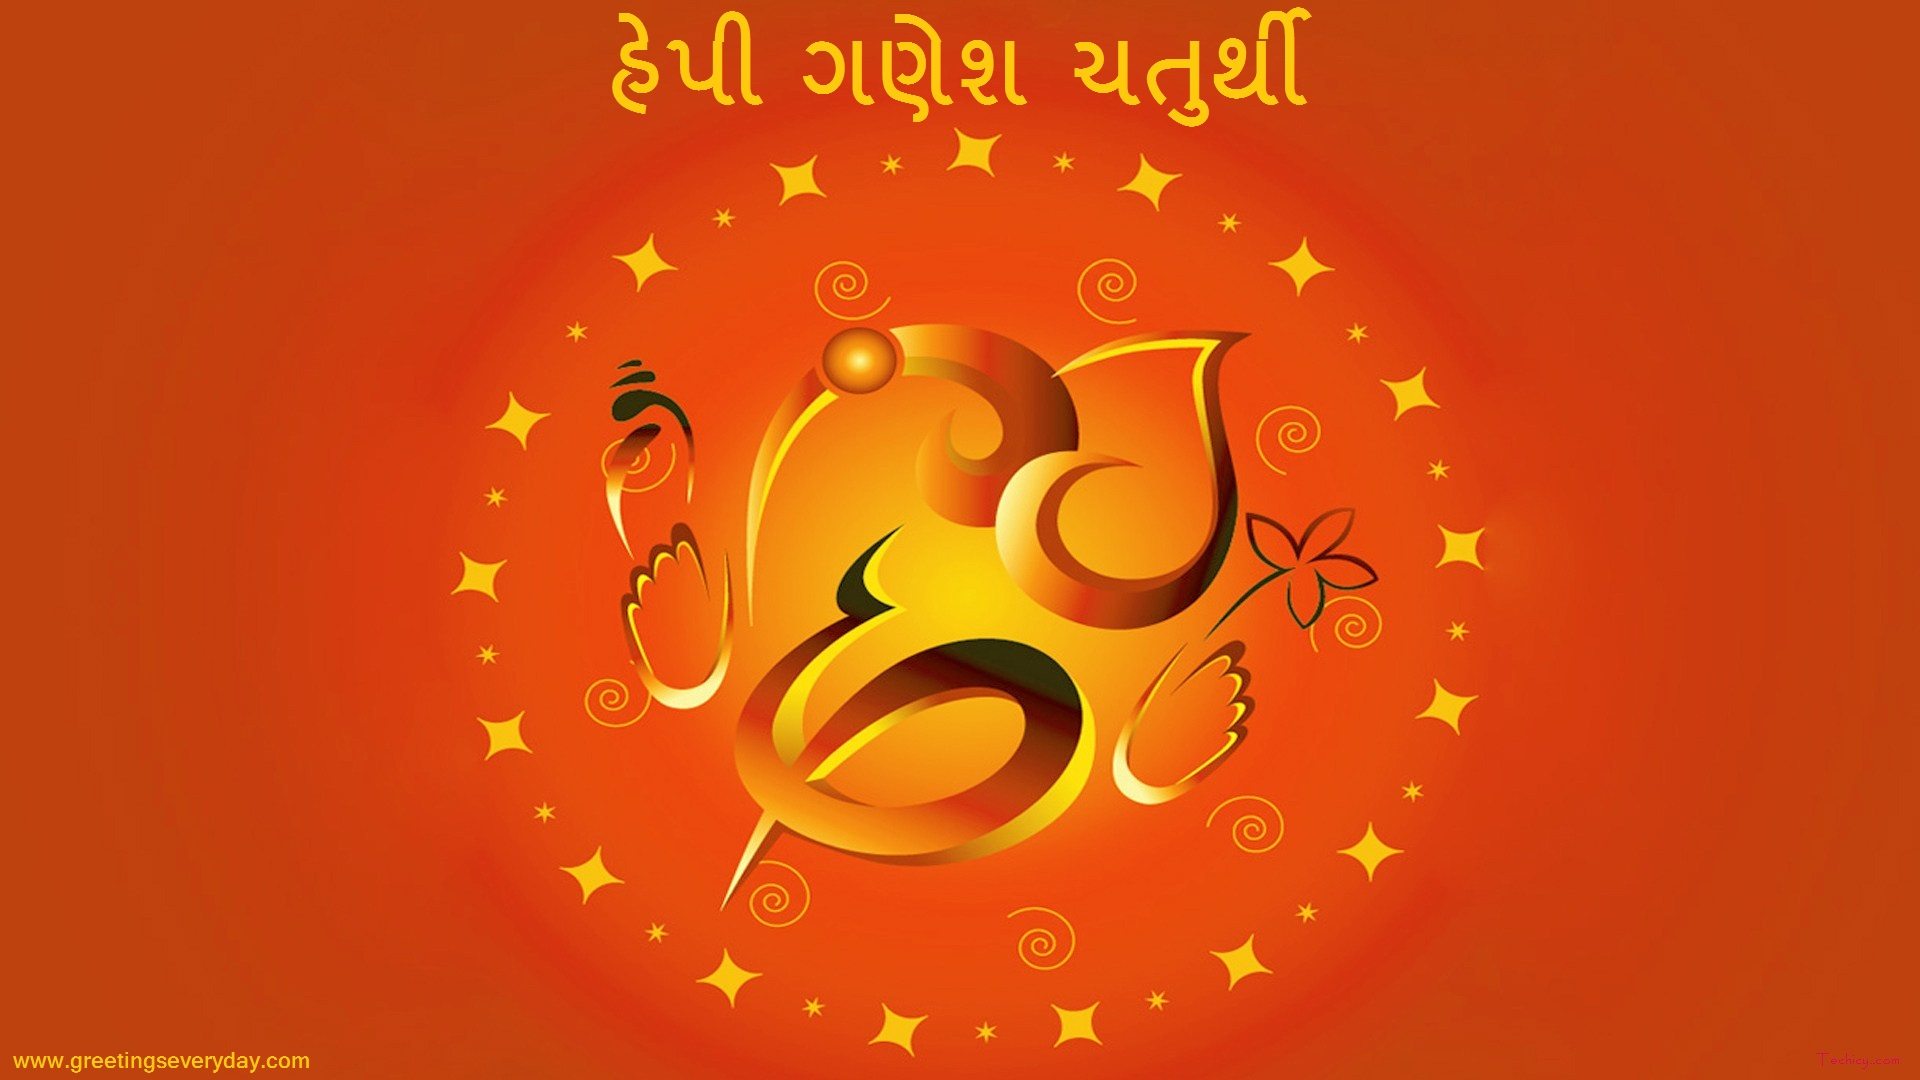 Vinayaka ganesh chaturthi advance wishes greeting card image vinayaka ganesh chaturthi greeting cards ecards images pictures photos in gujarati m4hsunfo